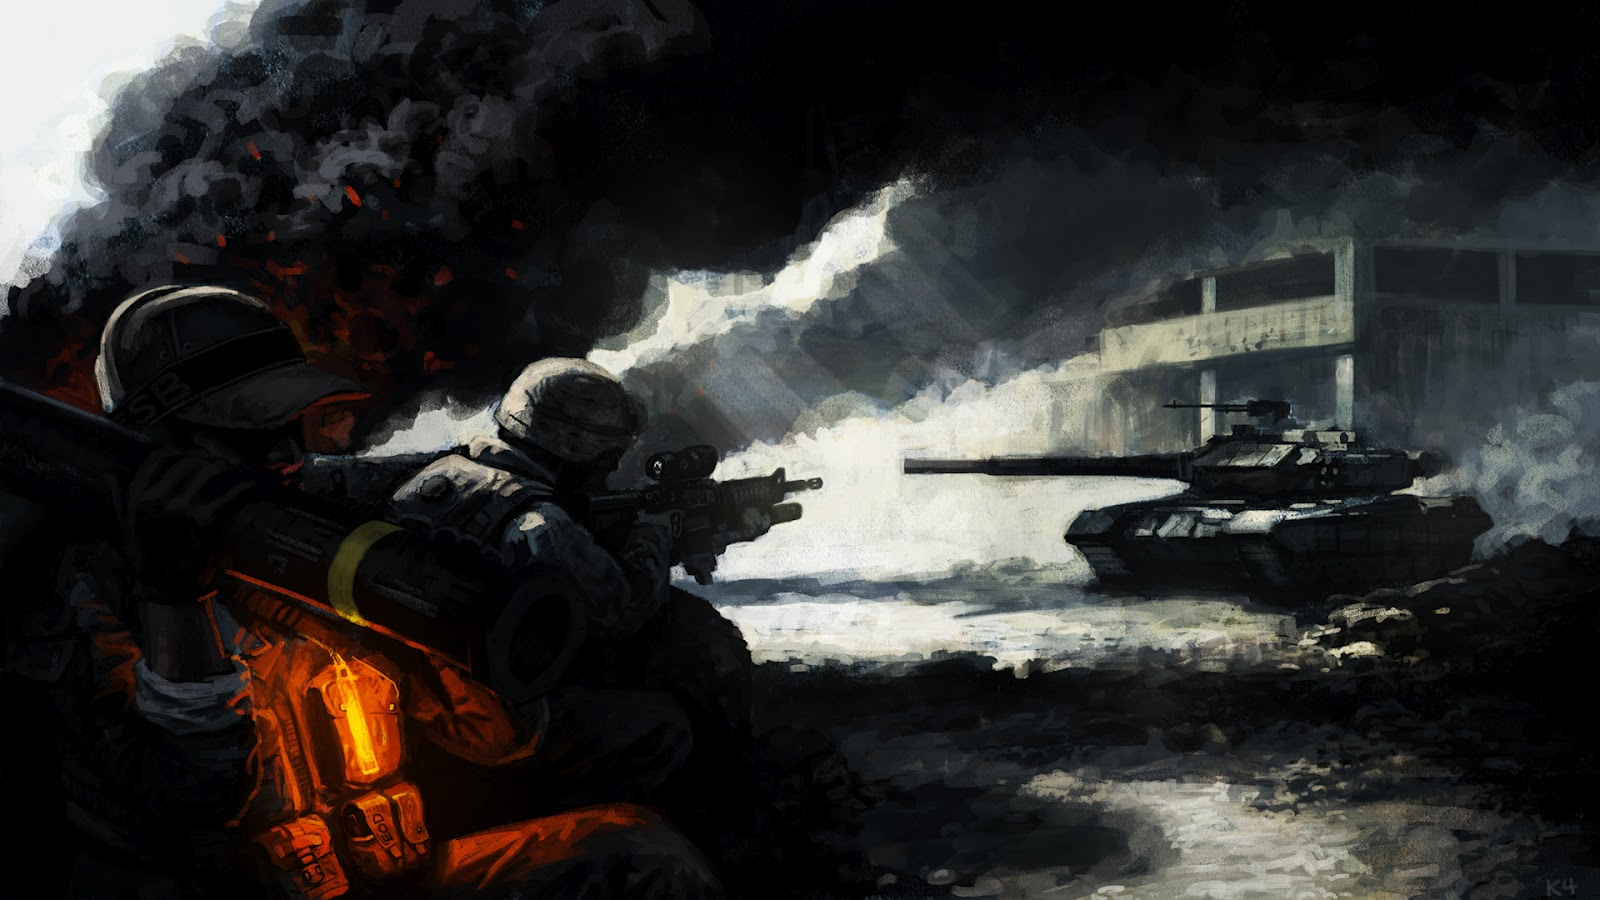 bf3 wallpaper - photo #21